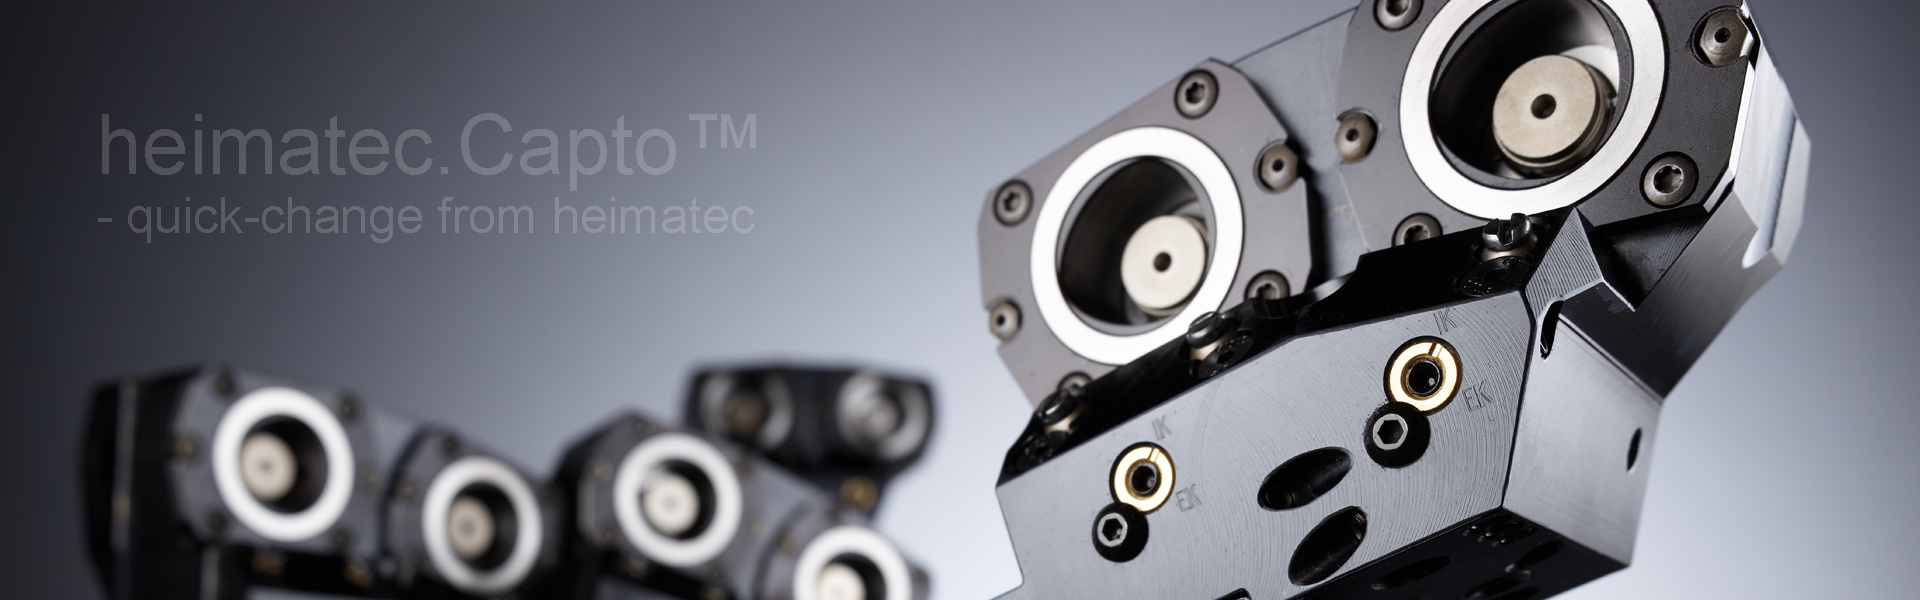 Precision tools for turning and milling processes - heimatec